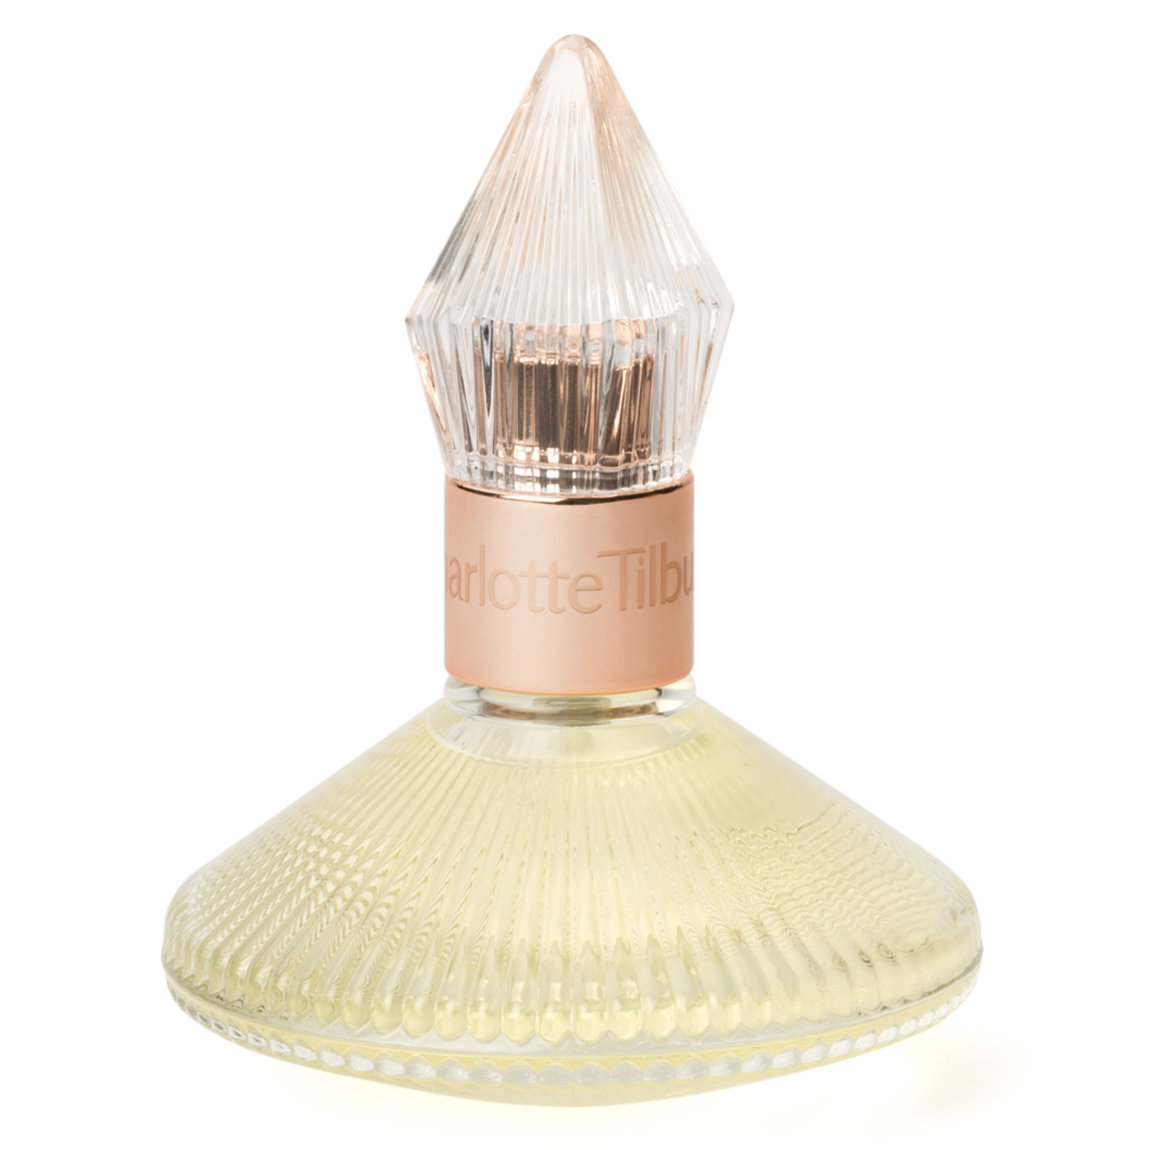 Charlotte Tilbury Scent of a Dream 50 ml product smear.